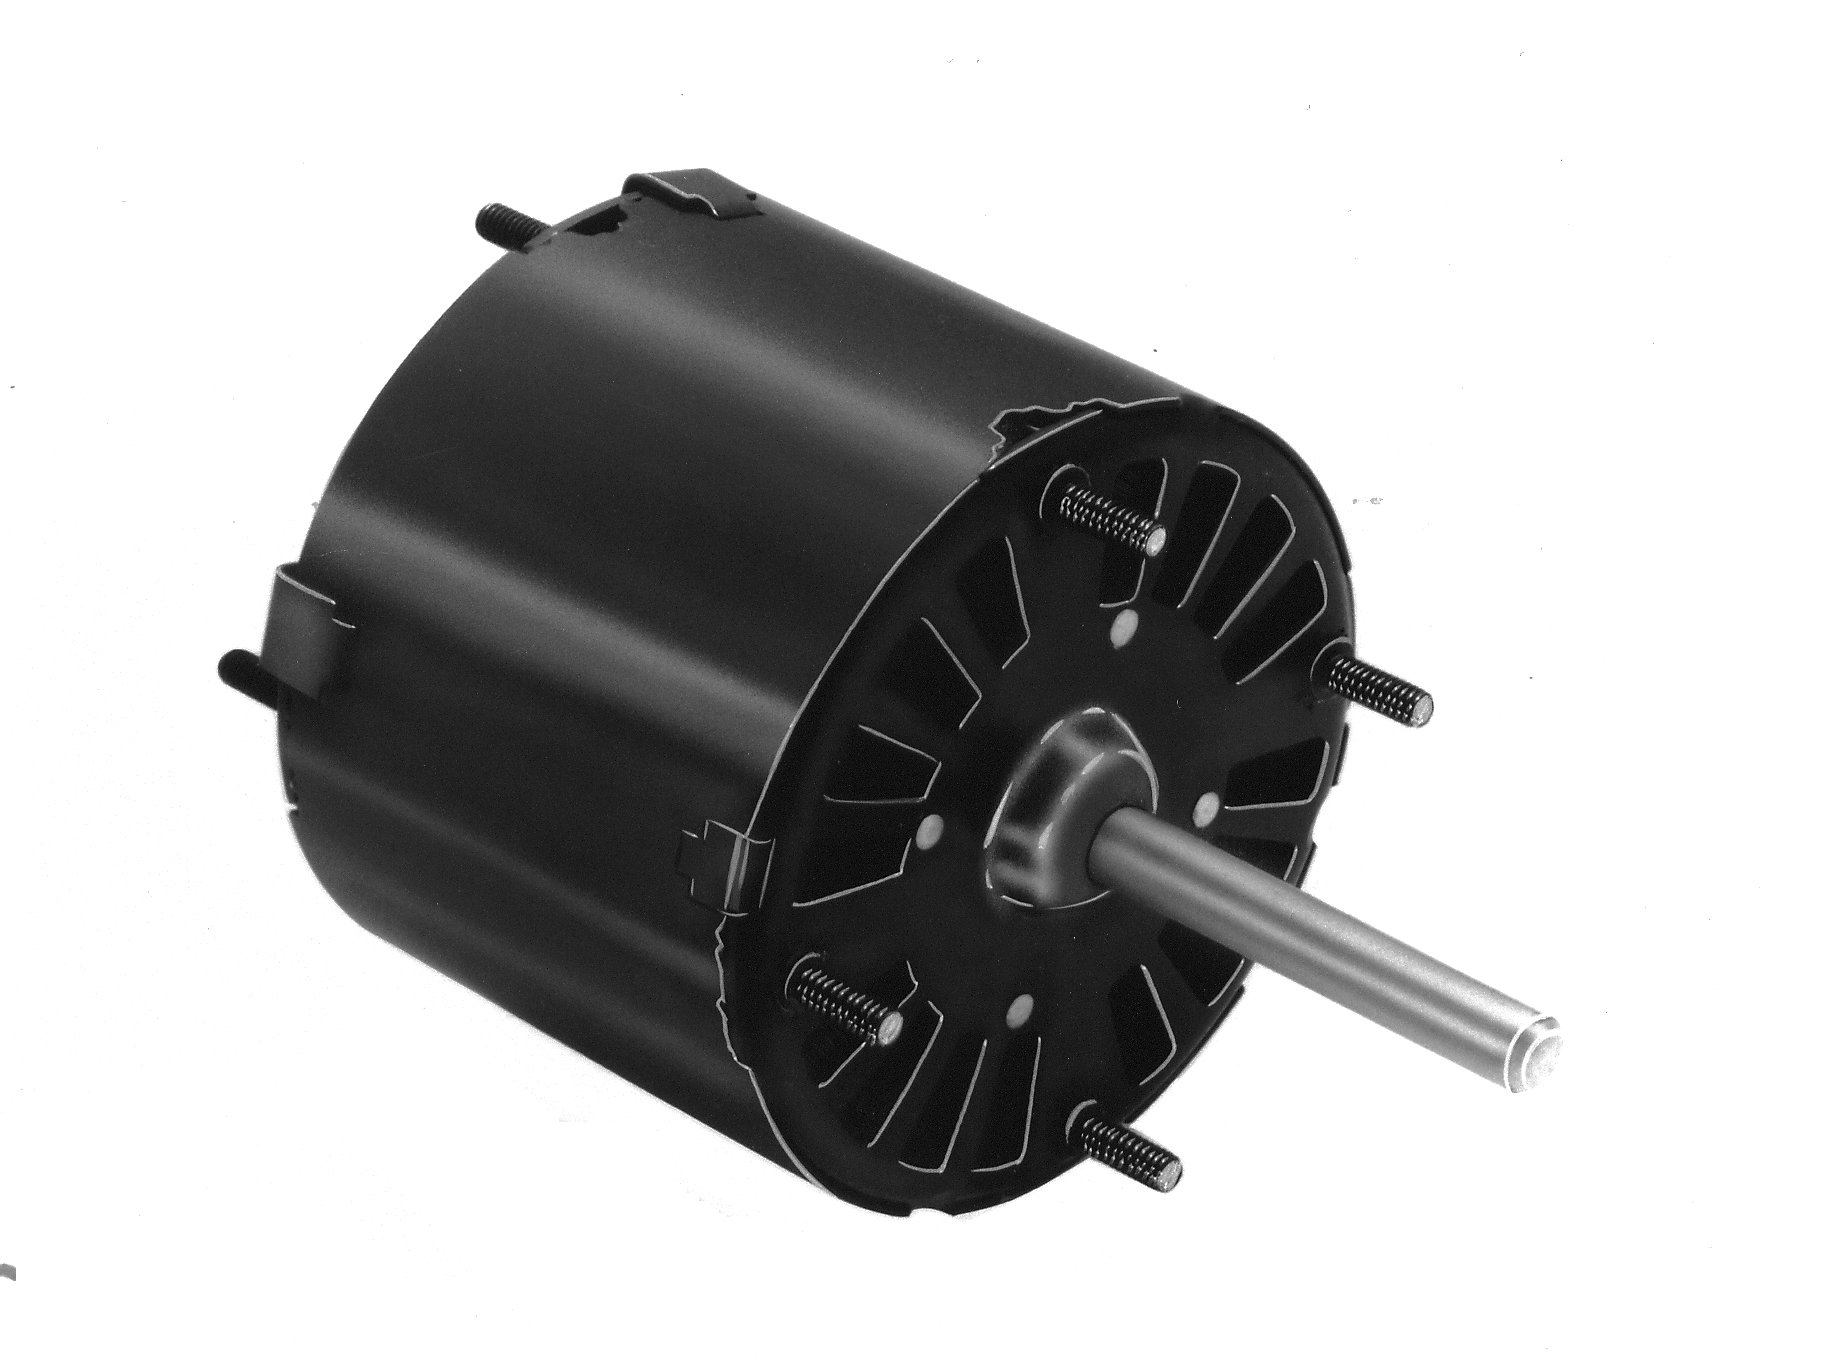 Fasco D514 3.3'' Frame Open Ventilated Shaded Pole General Purpose Motor withSleeve Bearing, 1/30HP, 1500rpm, 115V, 60Hz, 1.3 amps, CW Rotation